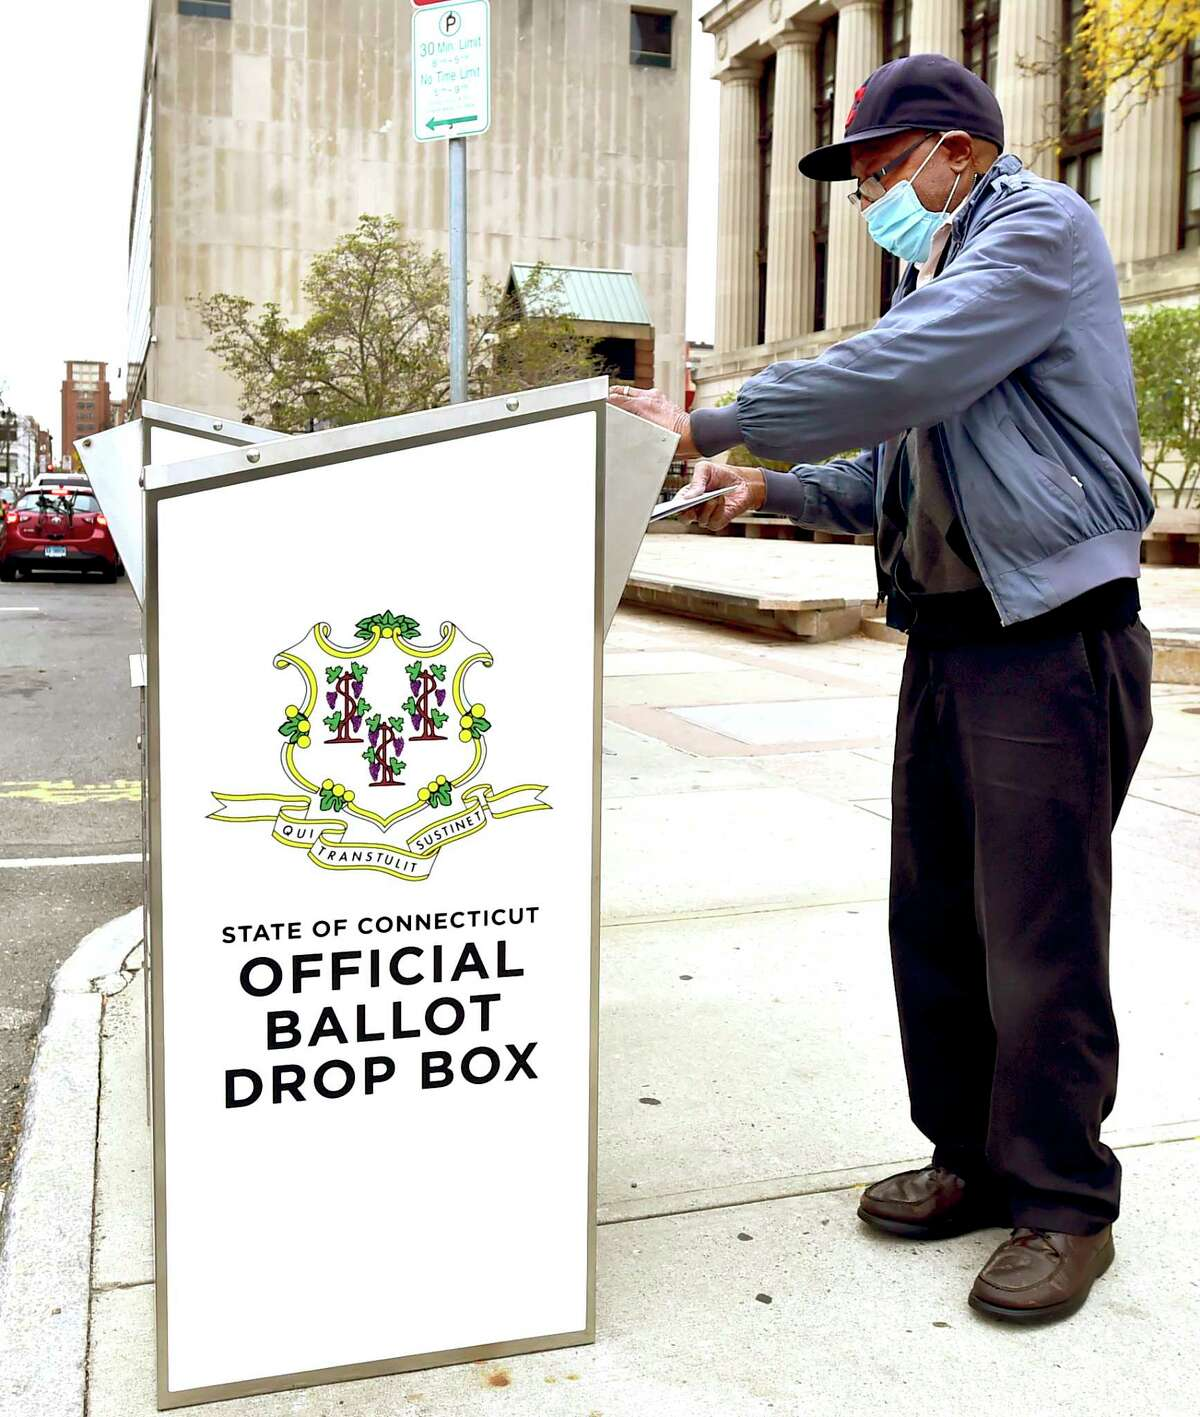 Ollie Lawrence drops his ballot into the State of Connecticut Official Ballot Drop Box in front of the Hall of Records on Orange Street in New Haven.